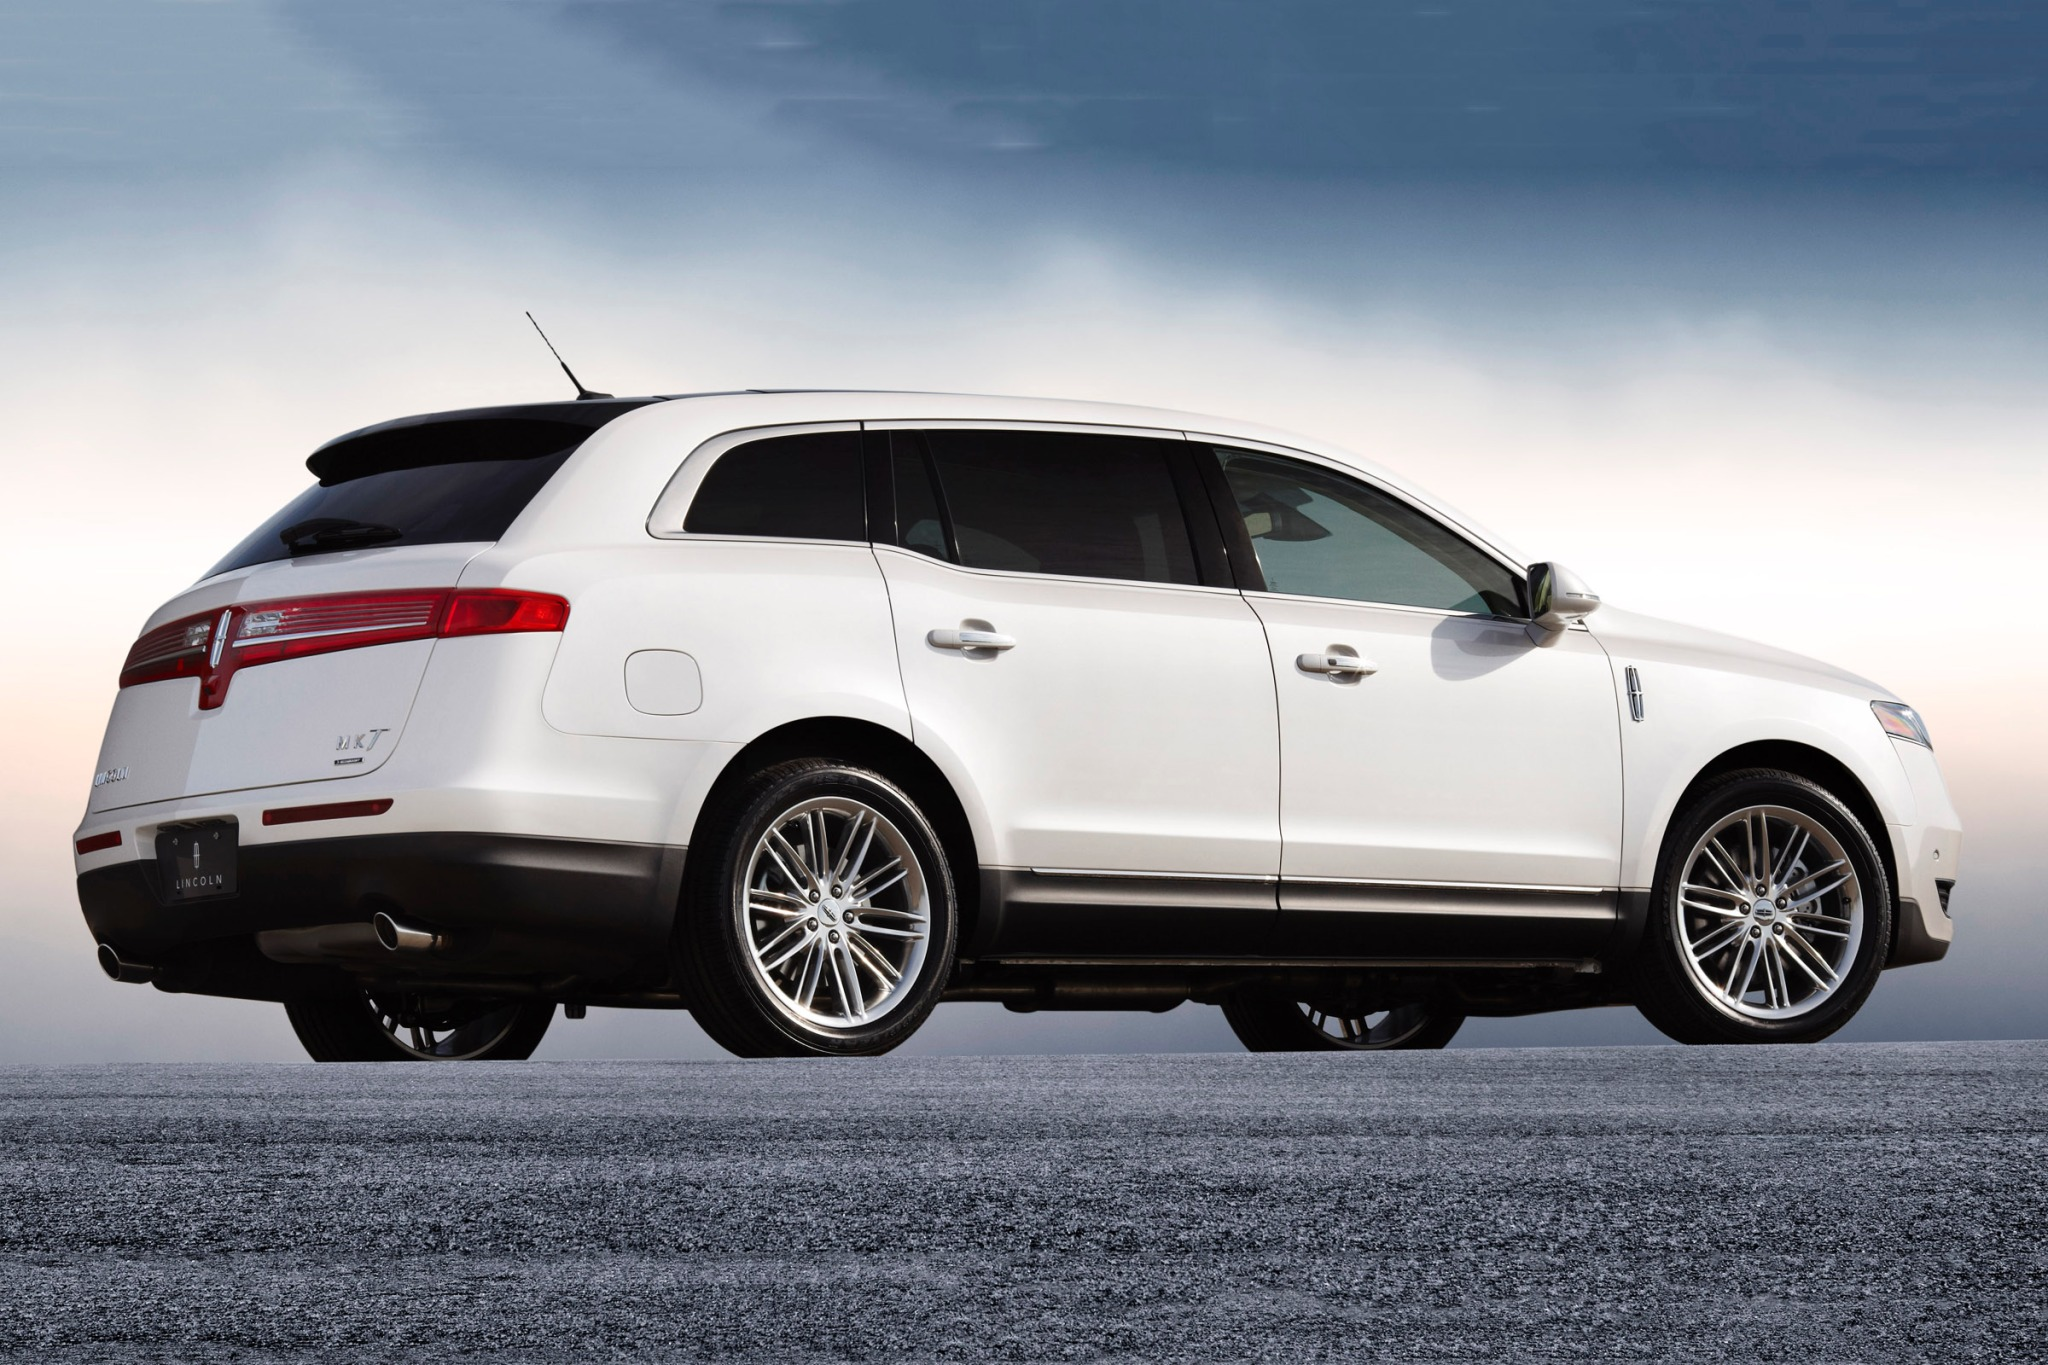 2014 Lincoln MKT Wagon Ex exterior #5